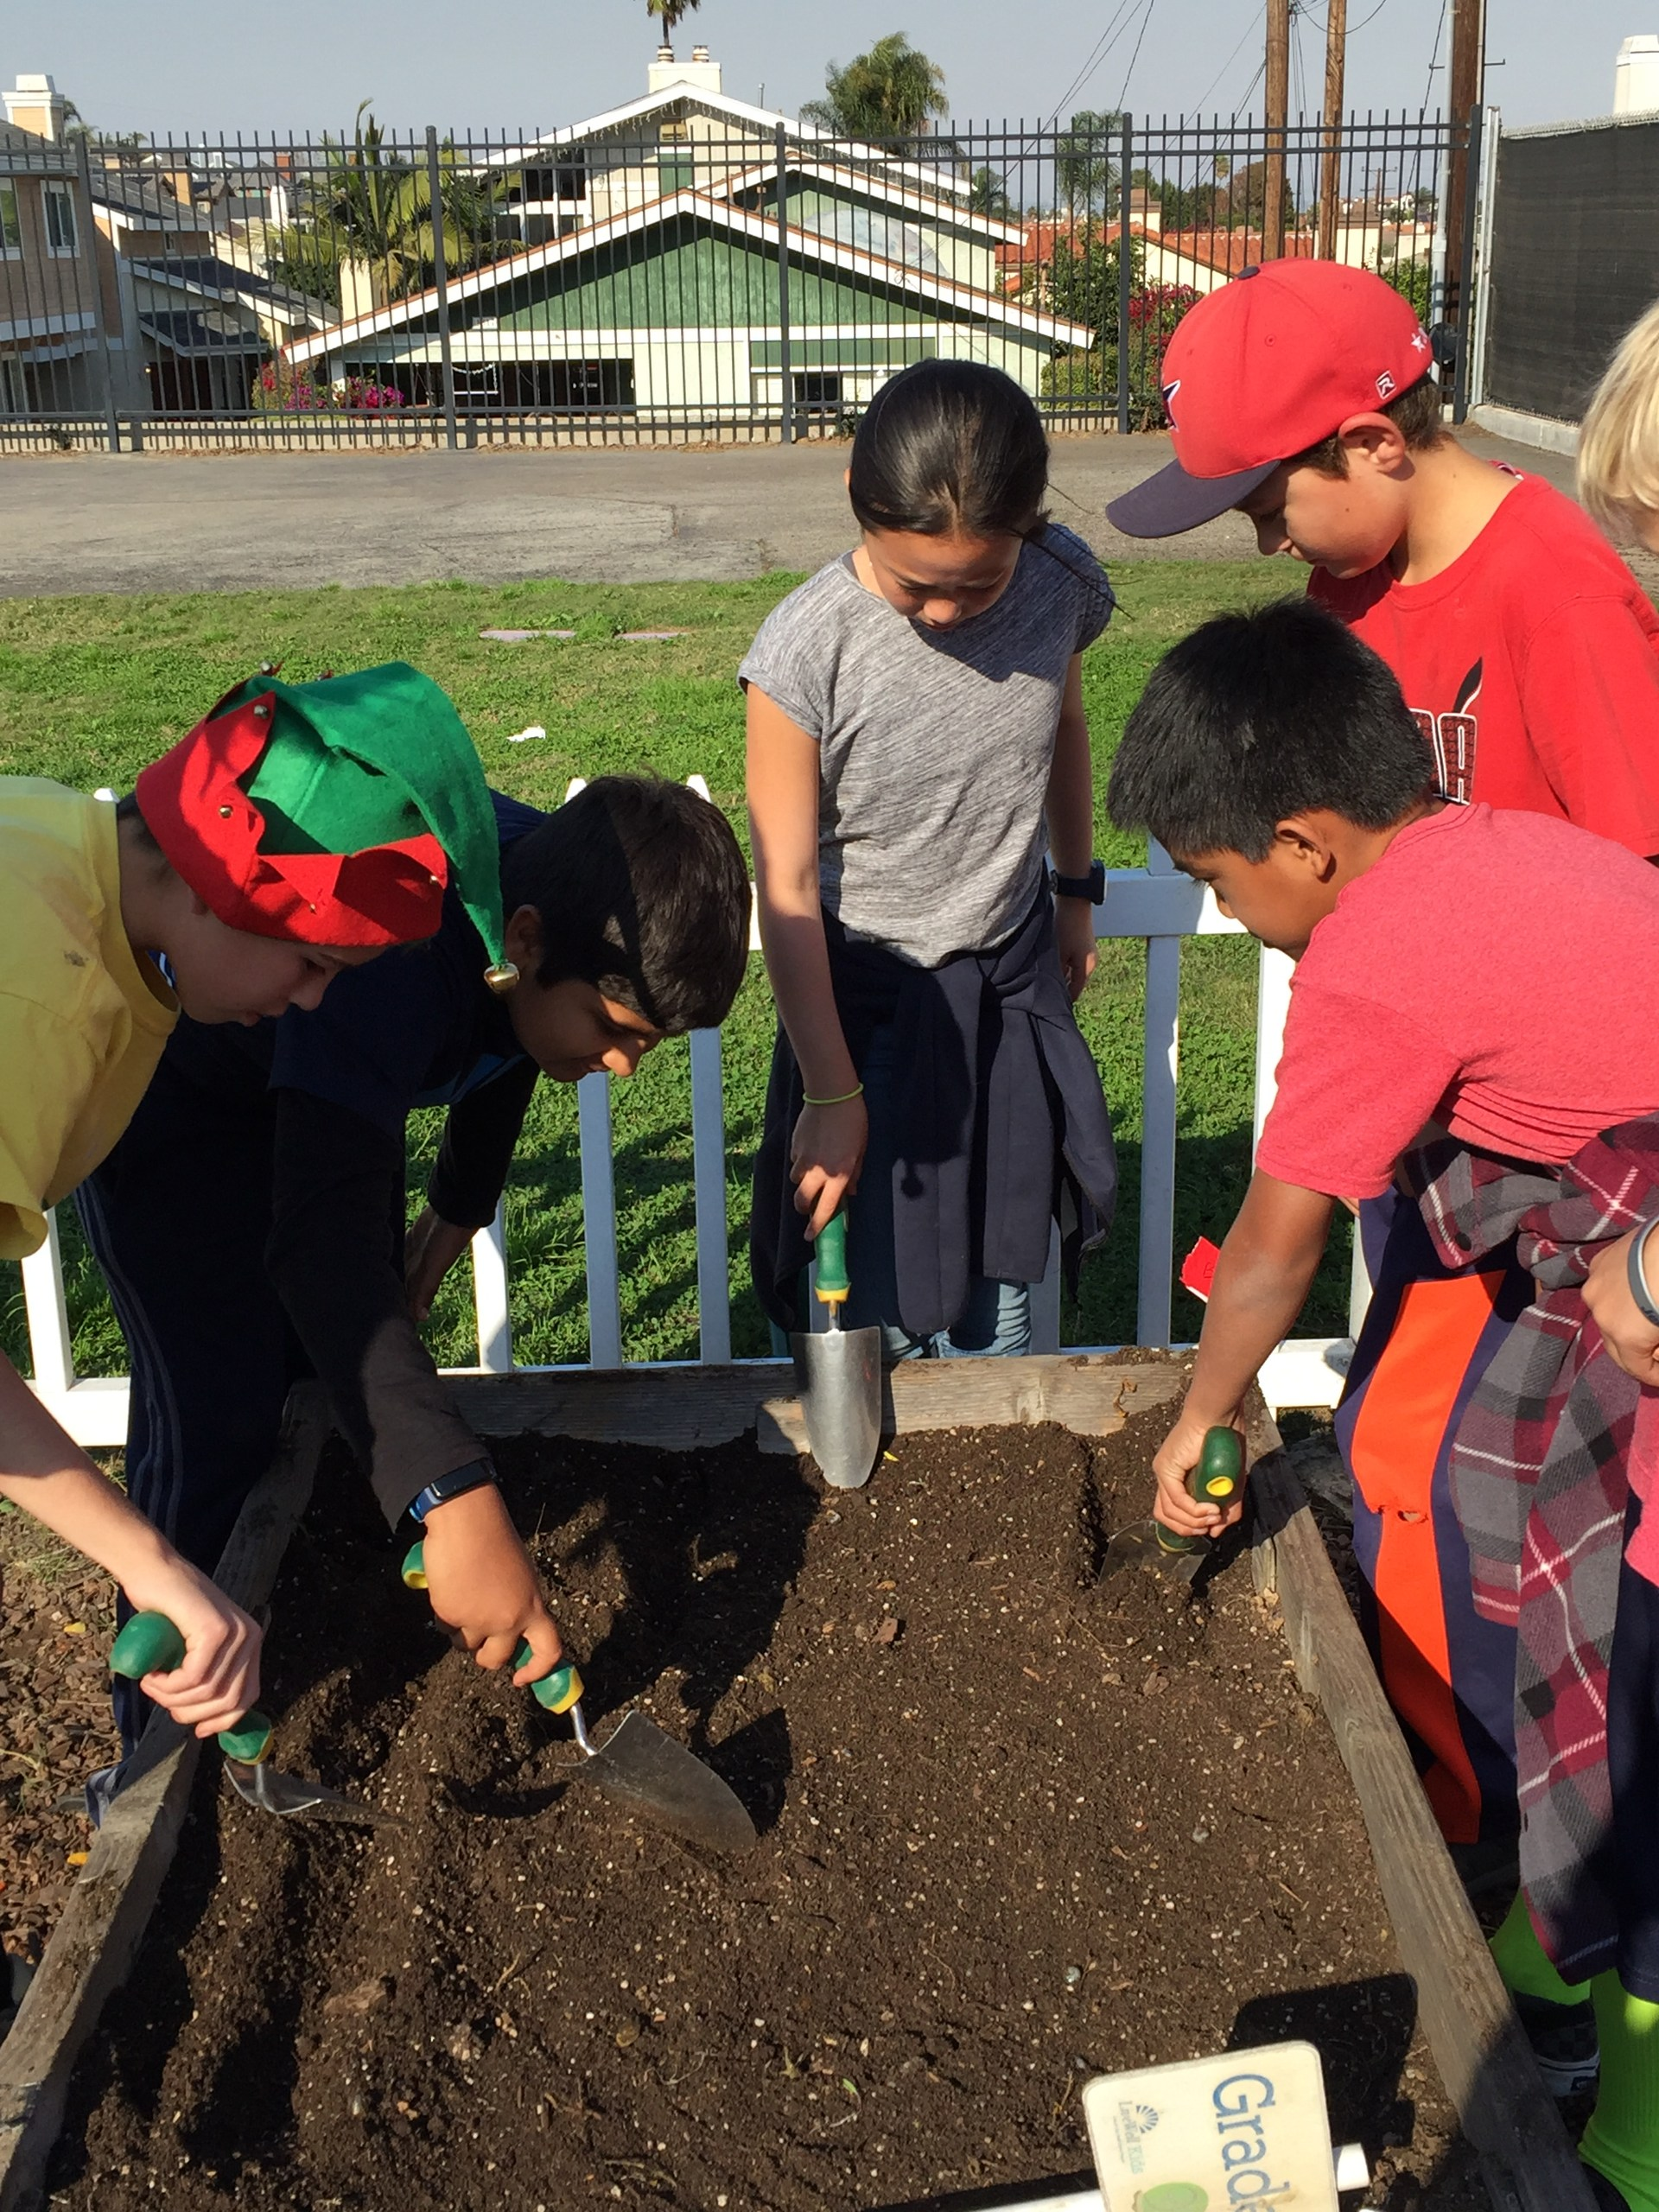 Four students gardening with tools.